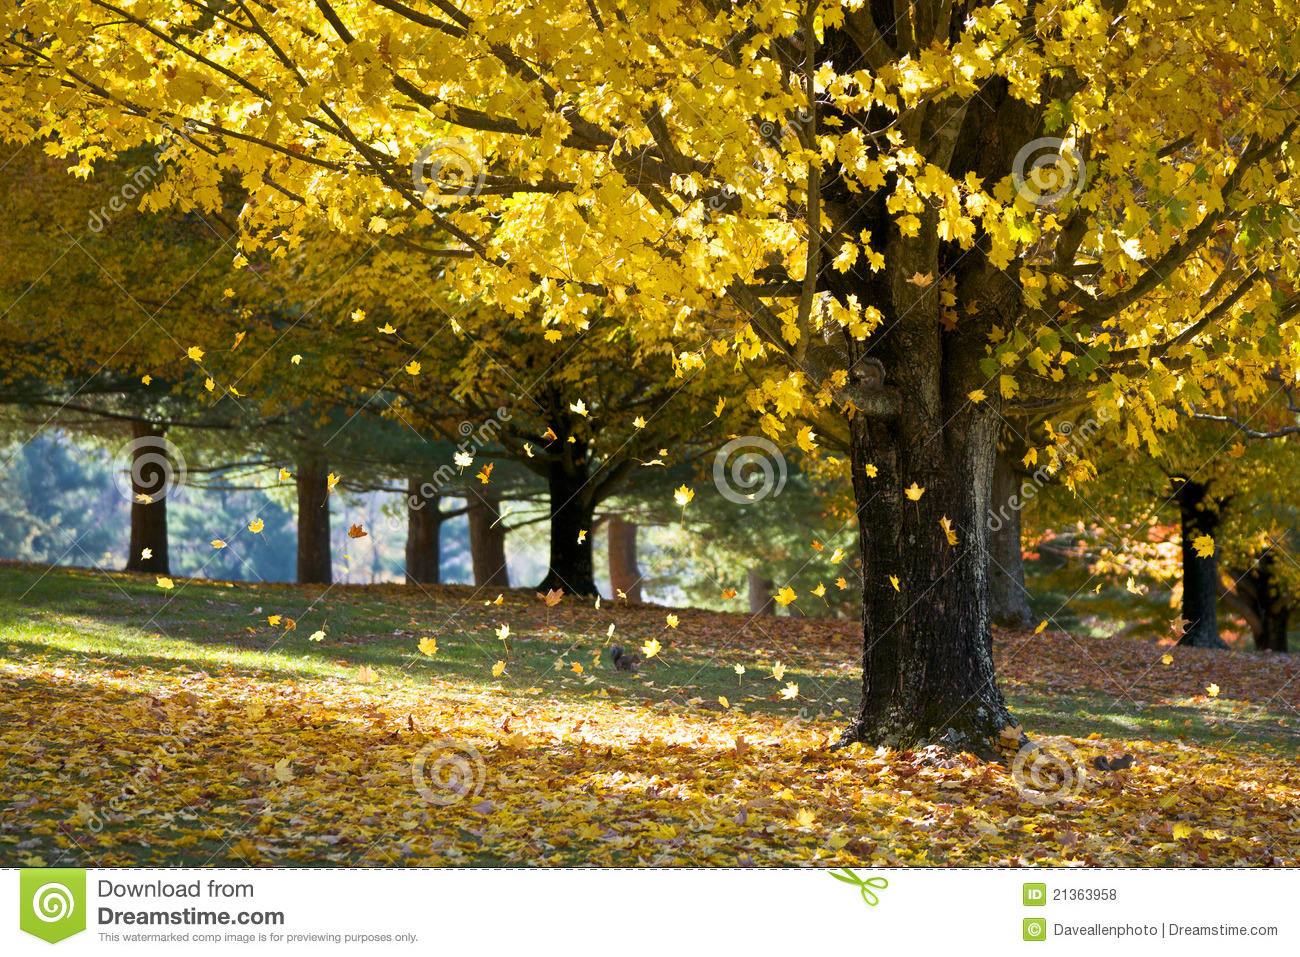 Download Fall Foliage Yellow Maple Leaves From Autumn Tree Stock Photo - Image of autumn, fine: 21363958